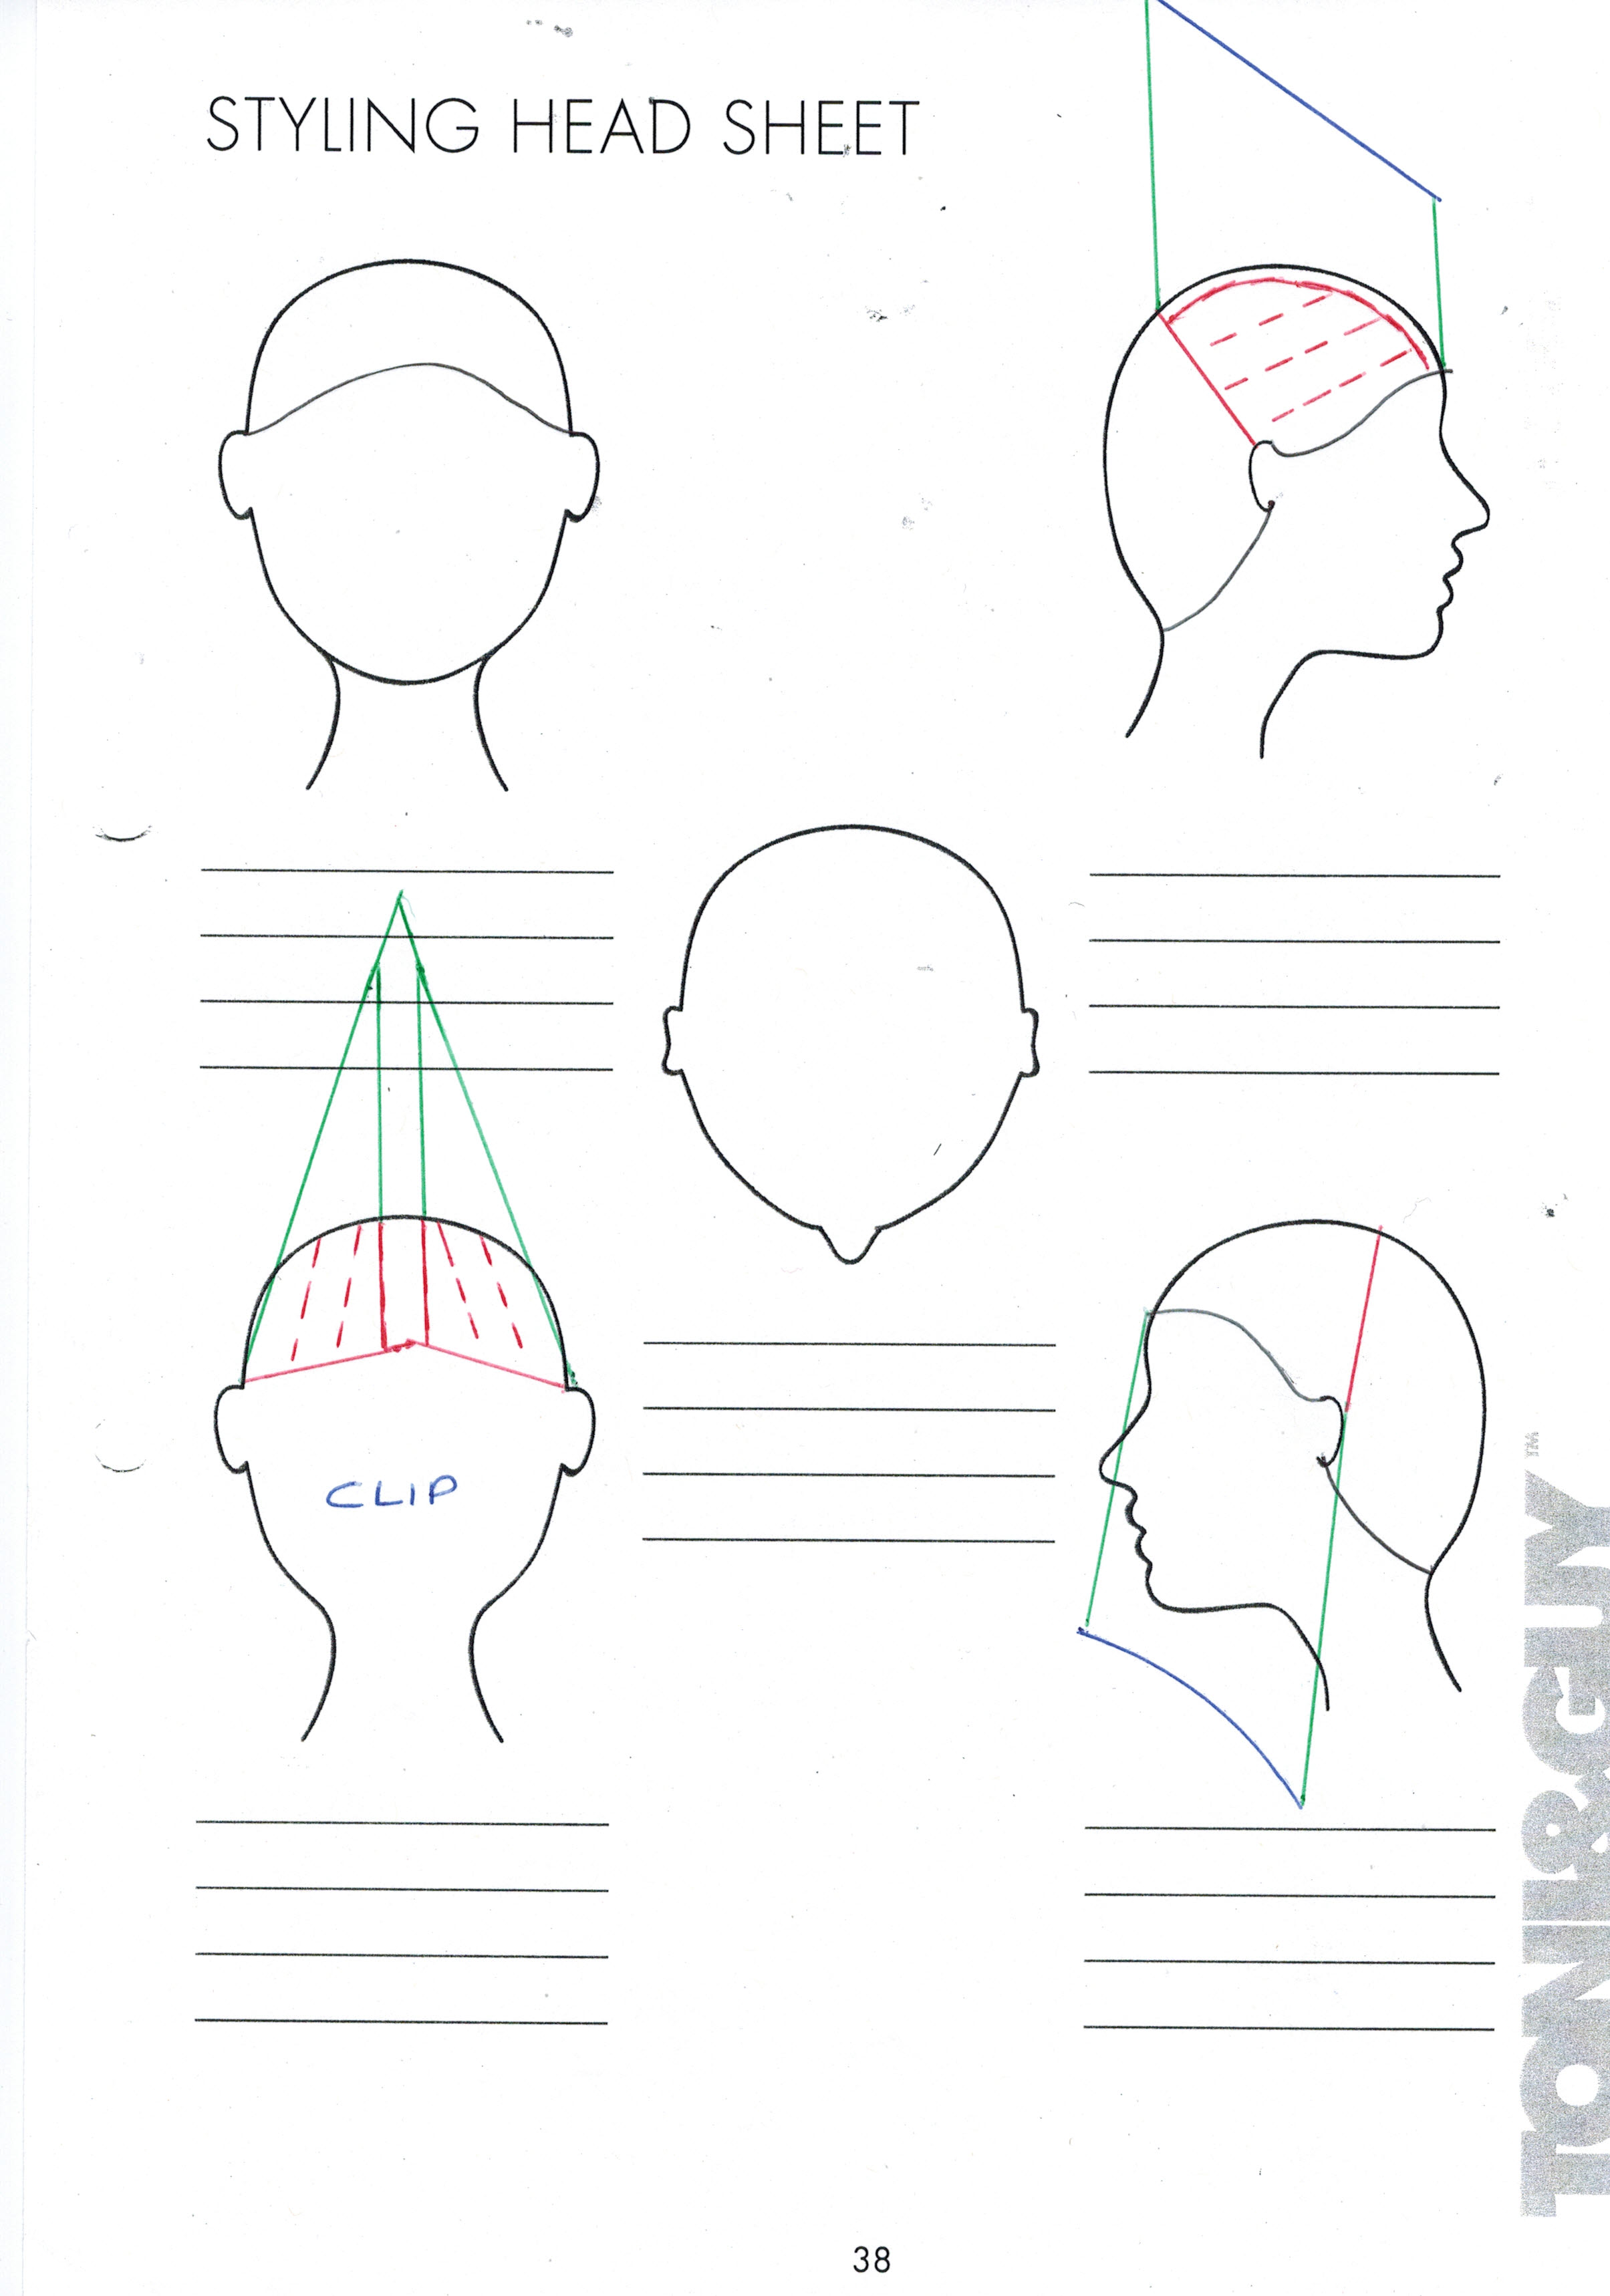 Blank Cosmetology Head Sheets For Pictures To Pin